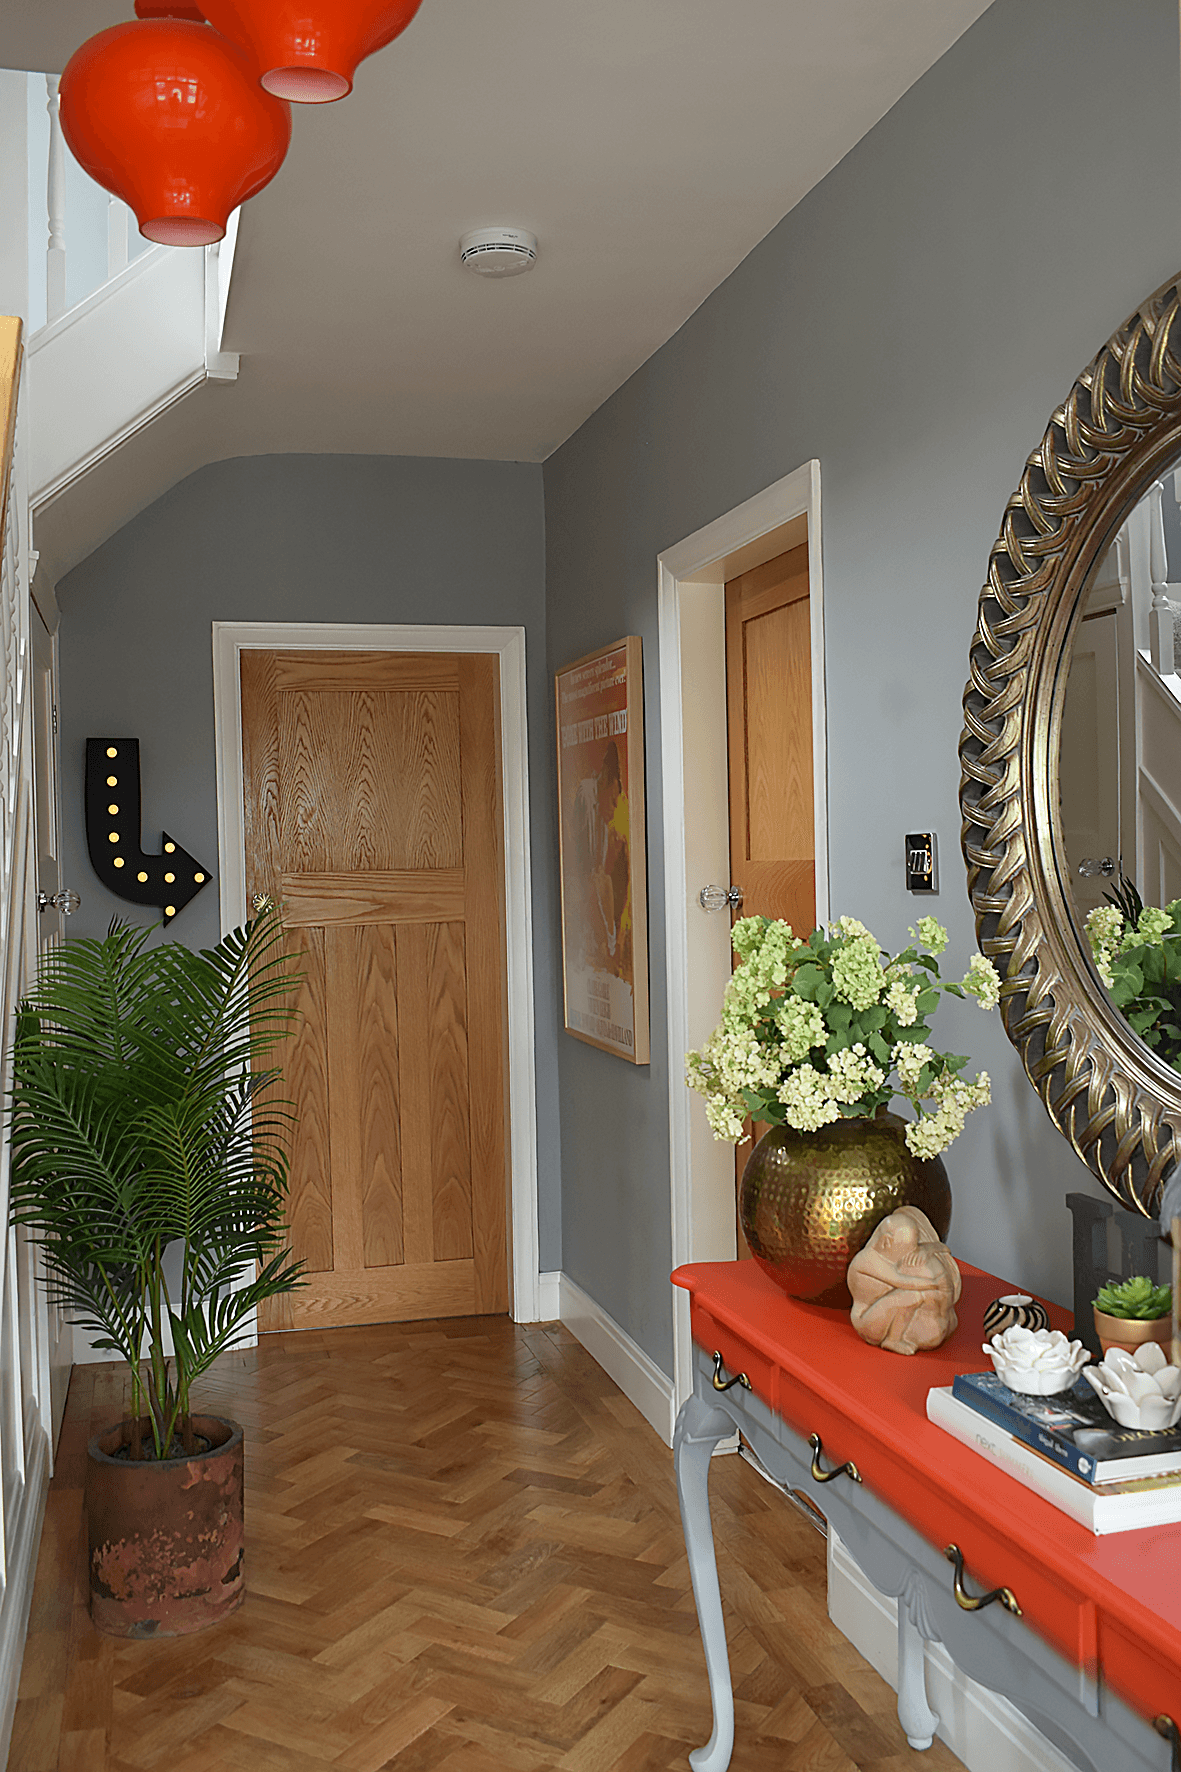 Hallway renovation before and after projects interior design light fixtures mirror foyer entry ways home entrance decorating ideas also rh pinterest